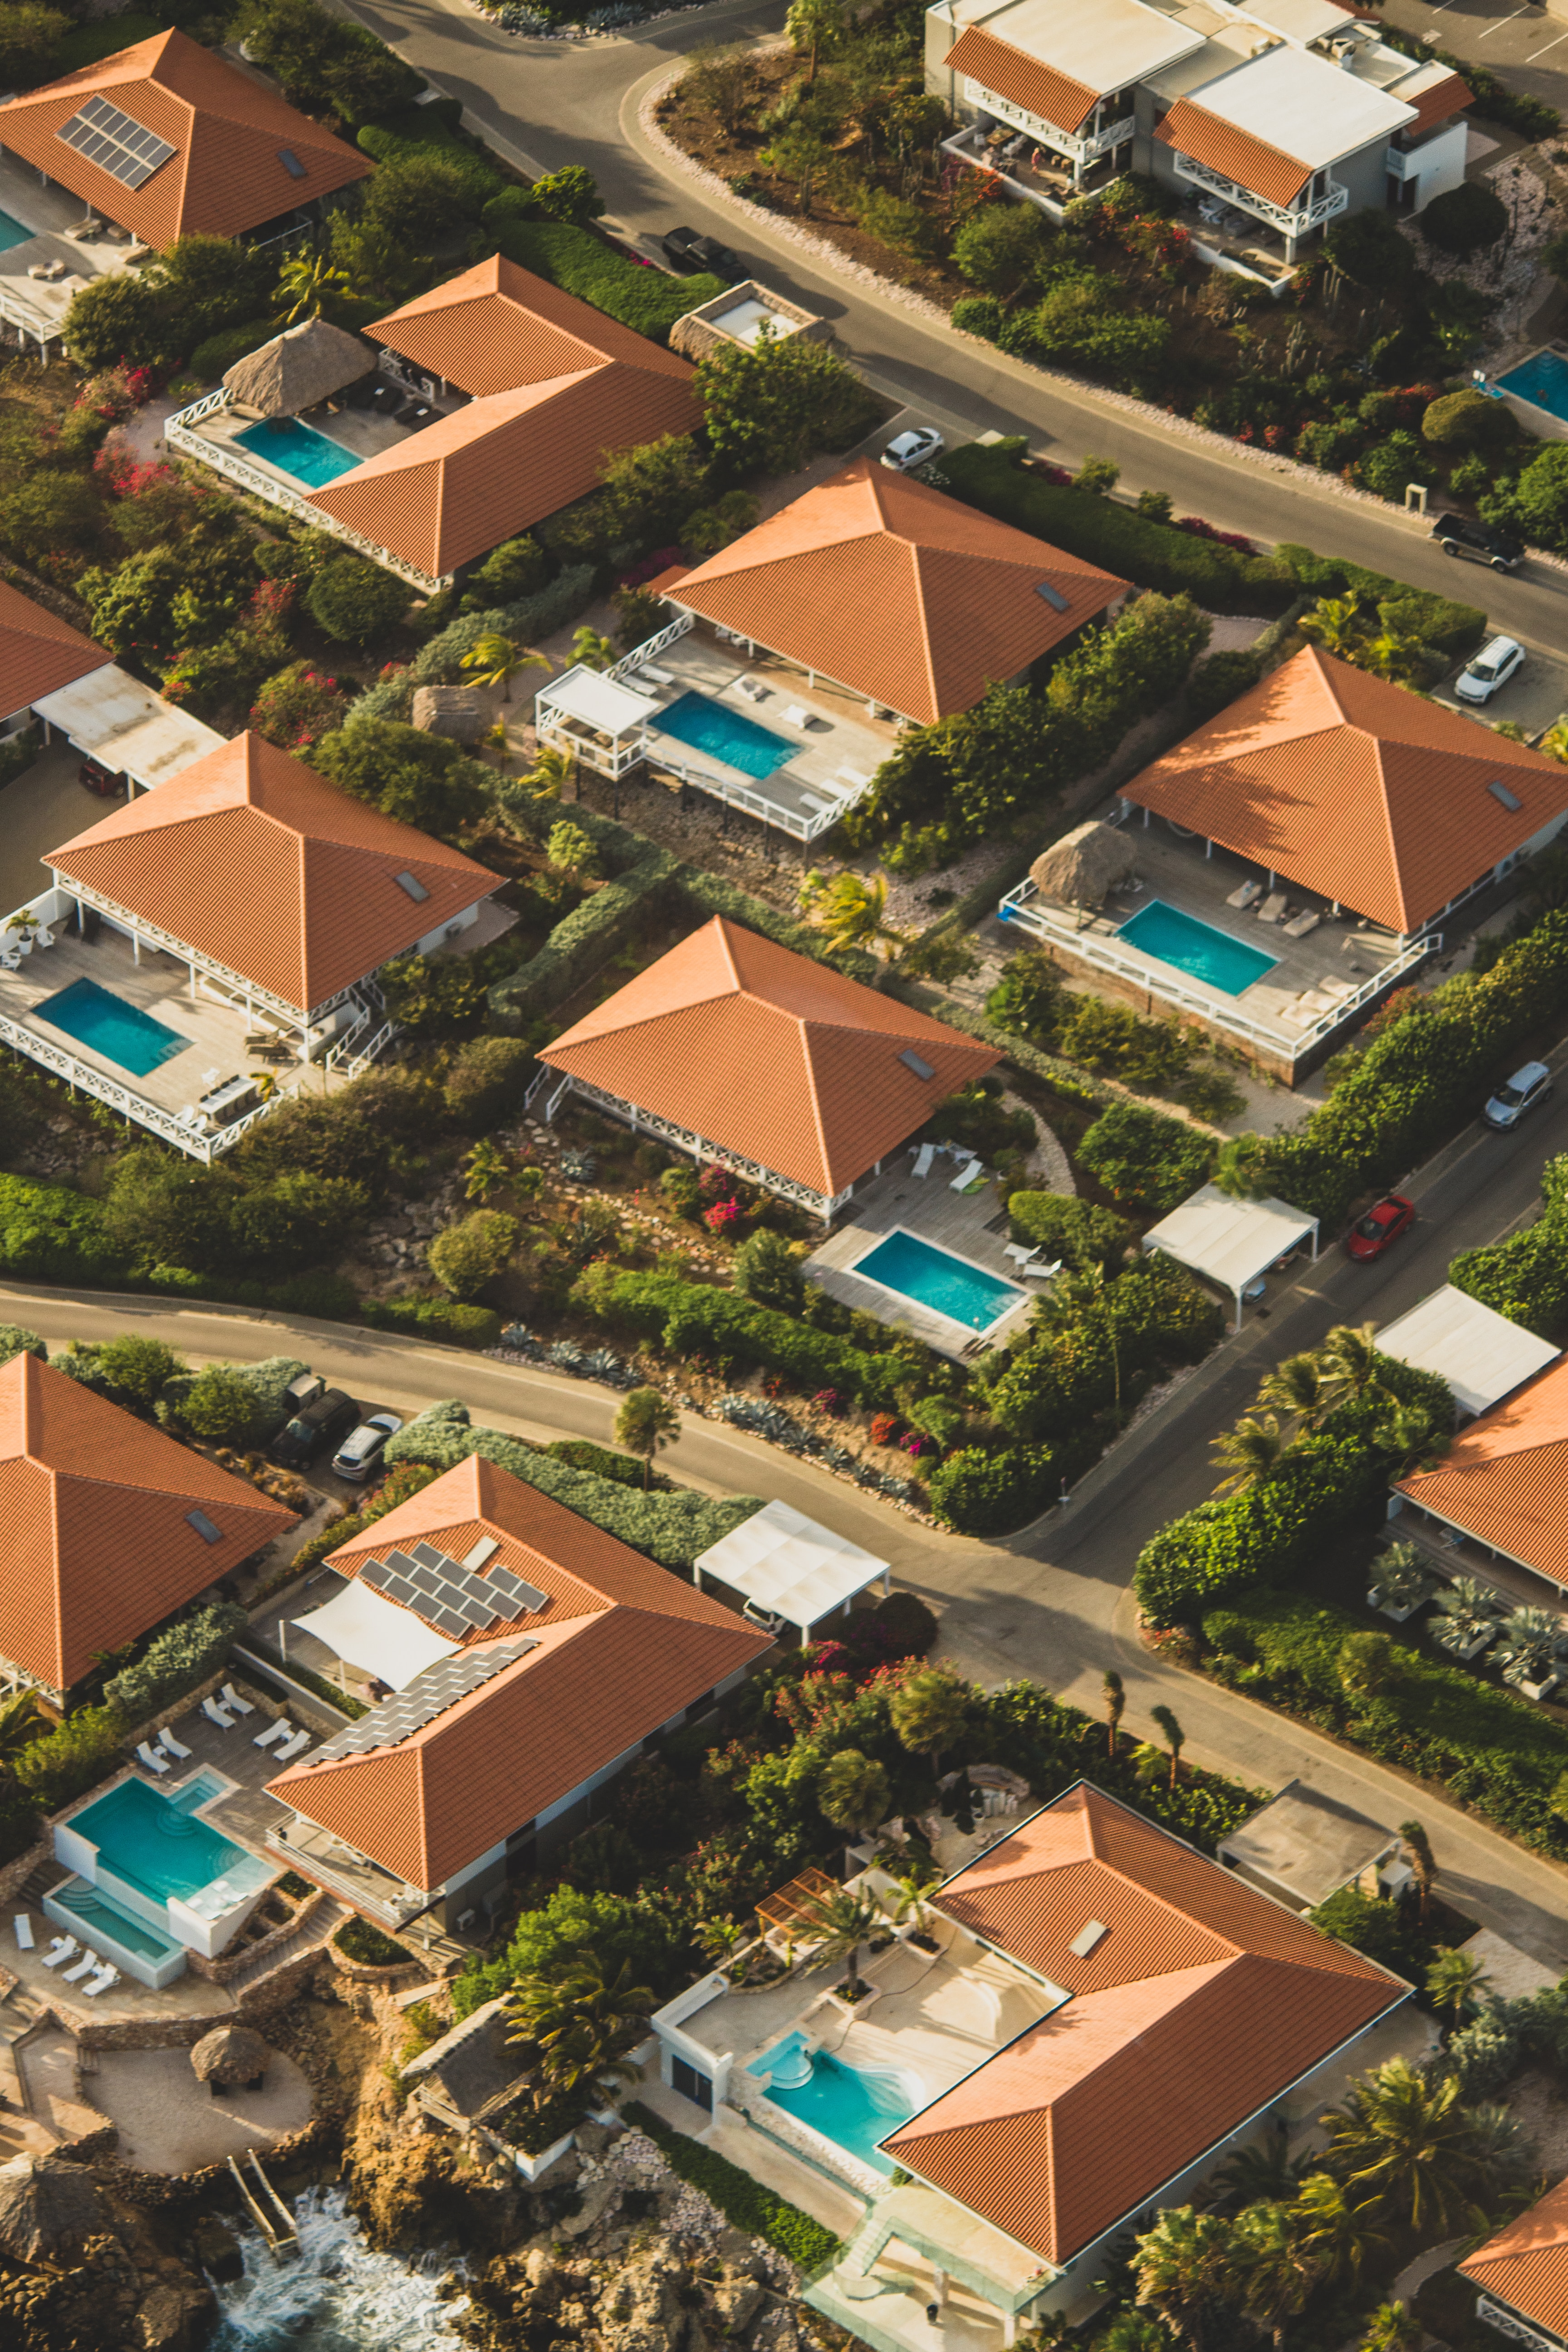 A residential area where all the homes have the same terracotta roofs and rectangular, turquoise pools.